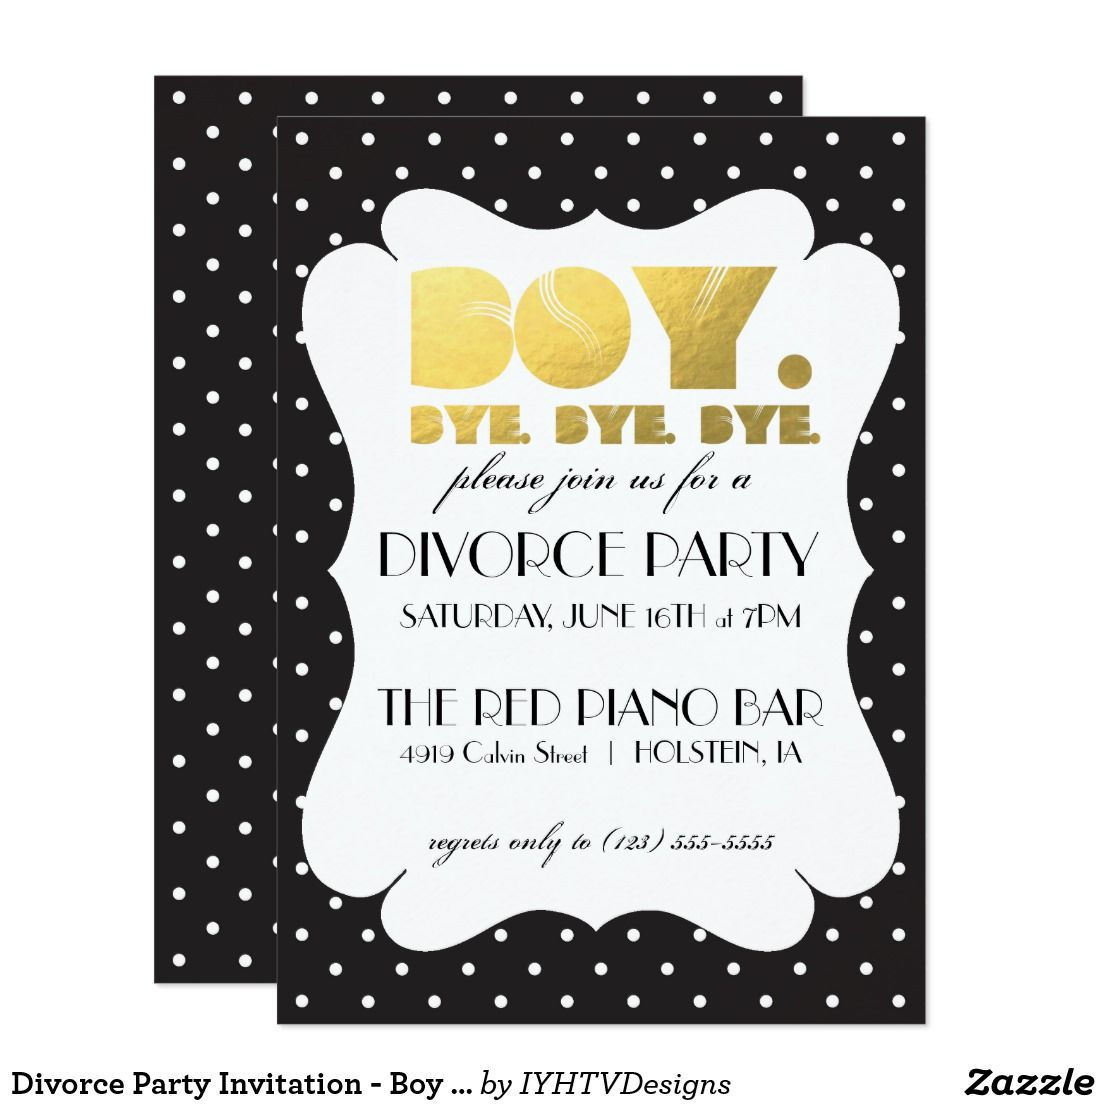 Divorce Party Invitation - Boy Bye | Divorce party and Party invitations